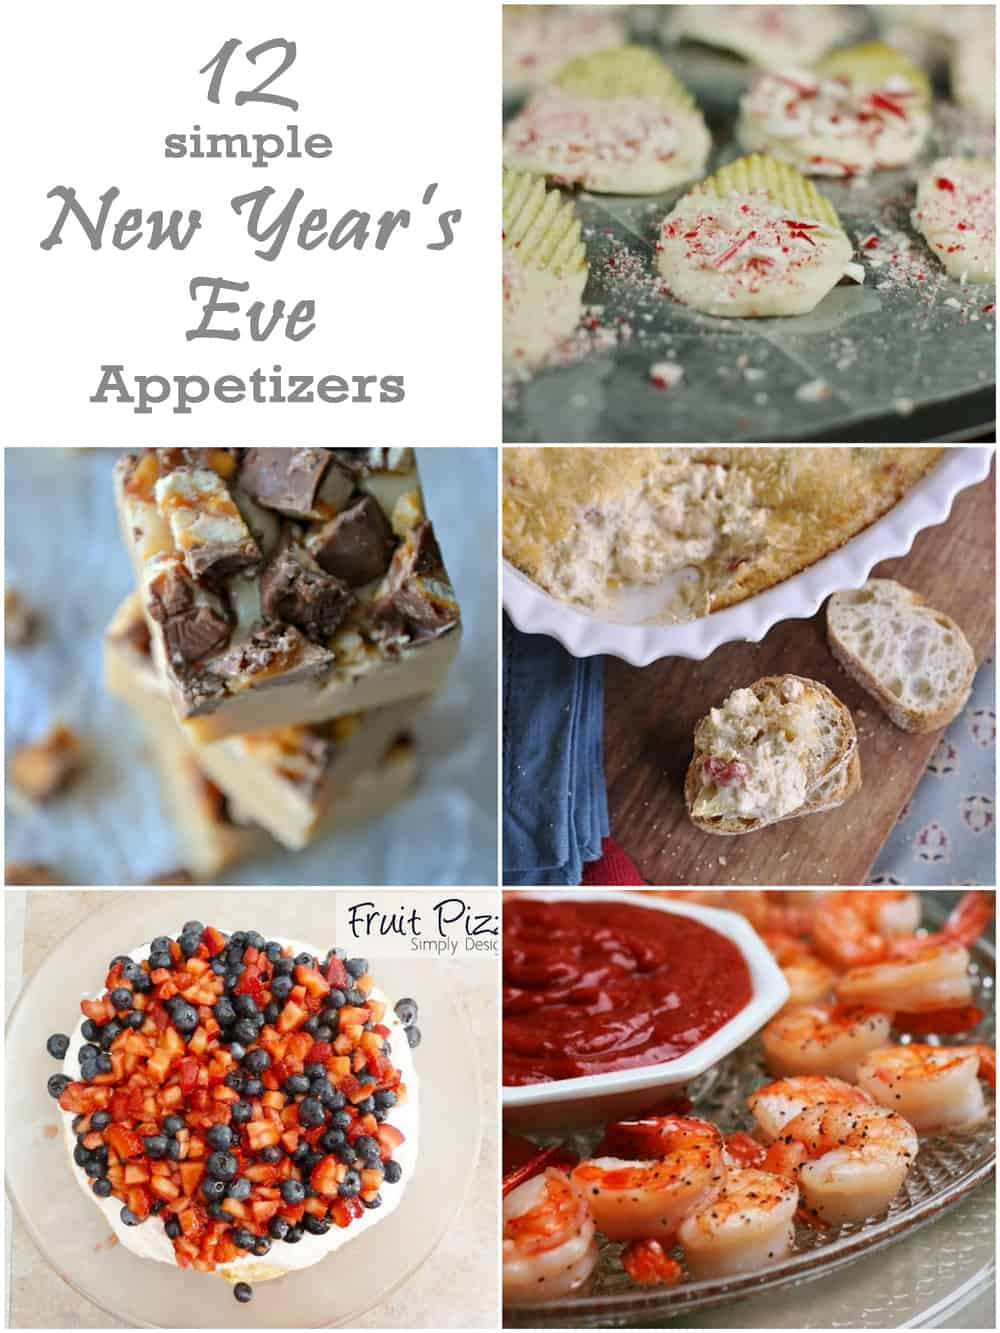 Easy New Years Appetizers  12 Simple Appetizers for New Year s Eve